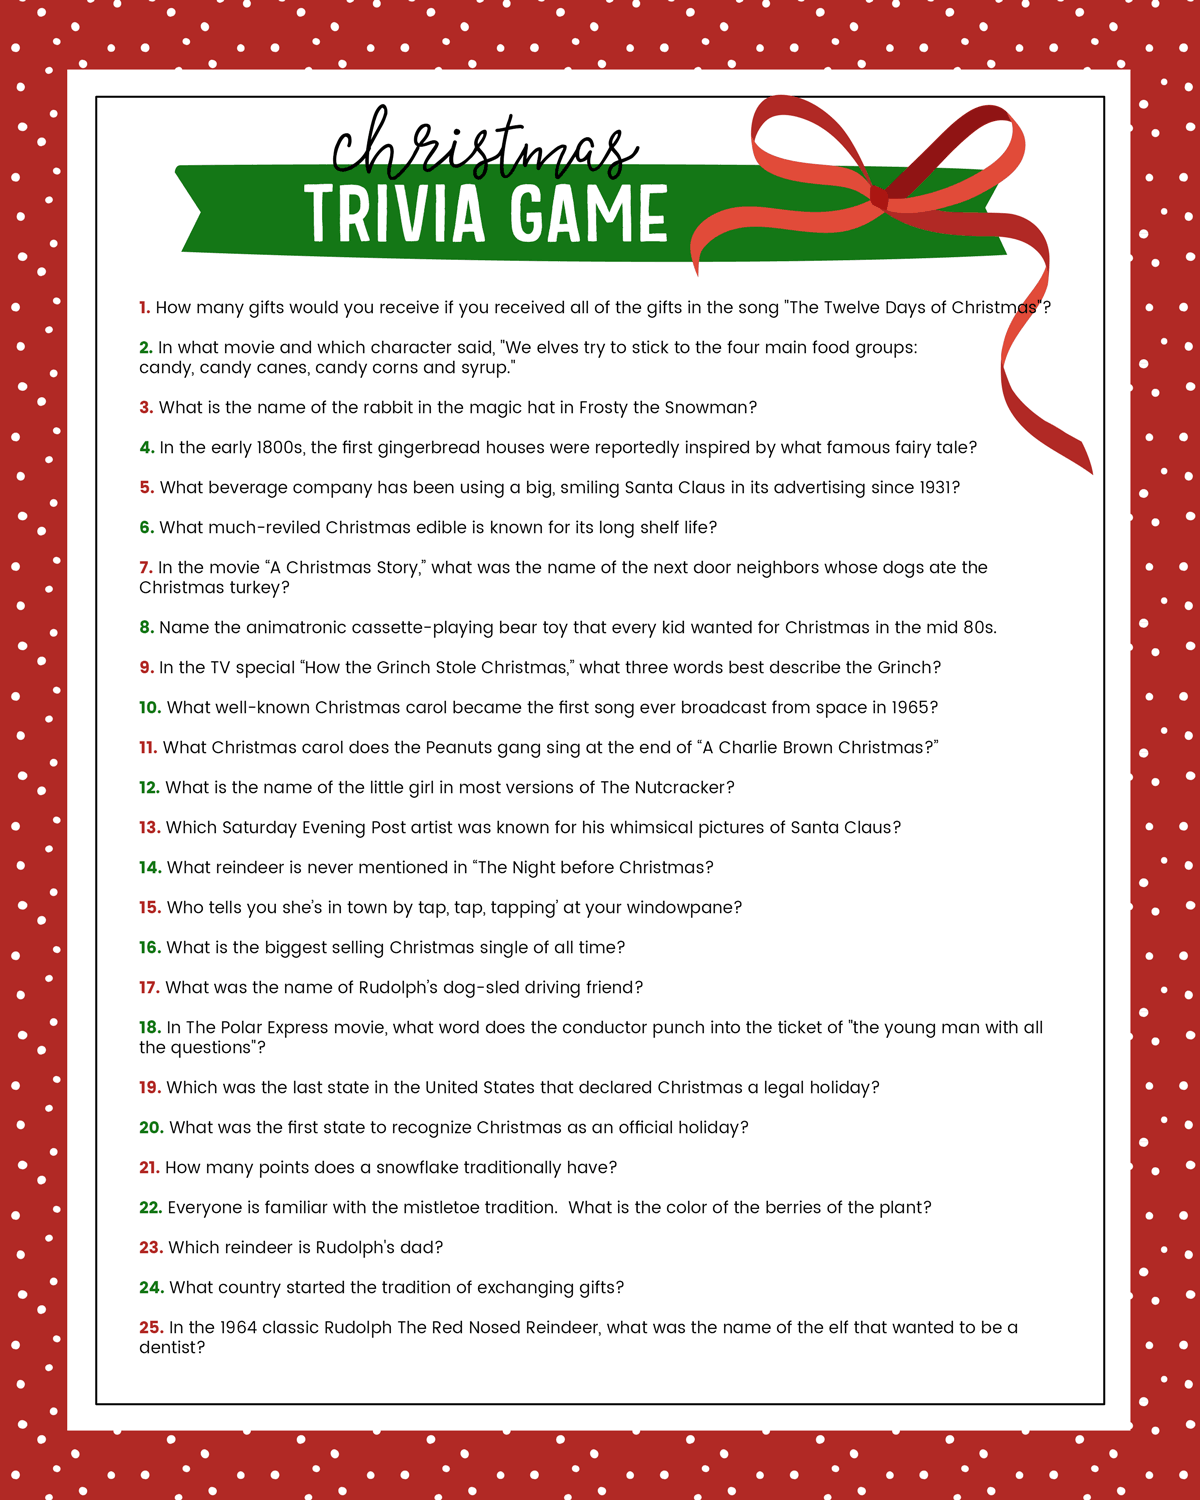 Free Christmas Trivia Questions And Answers Printable